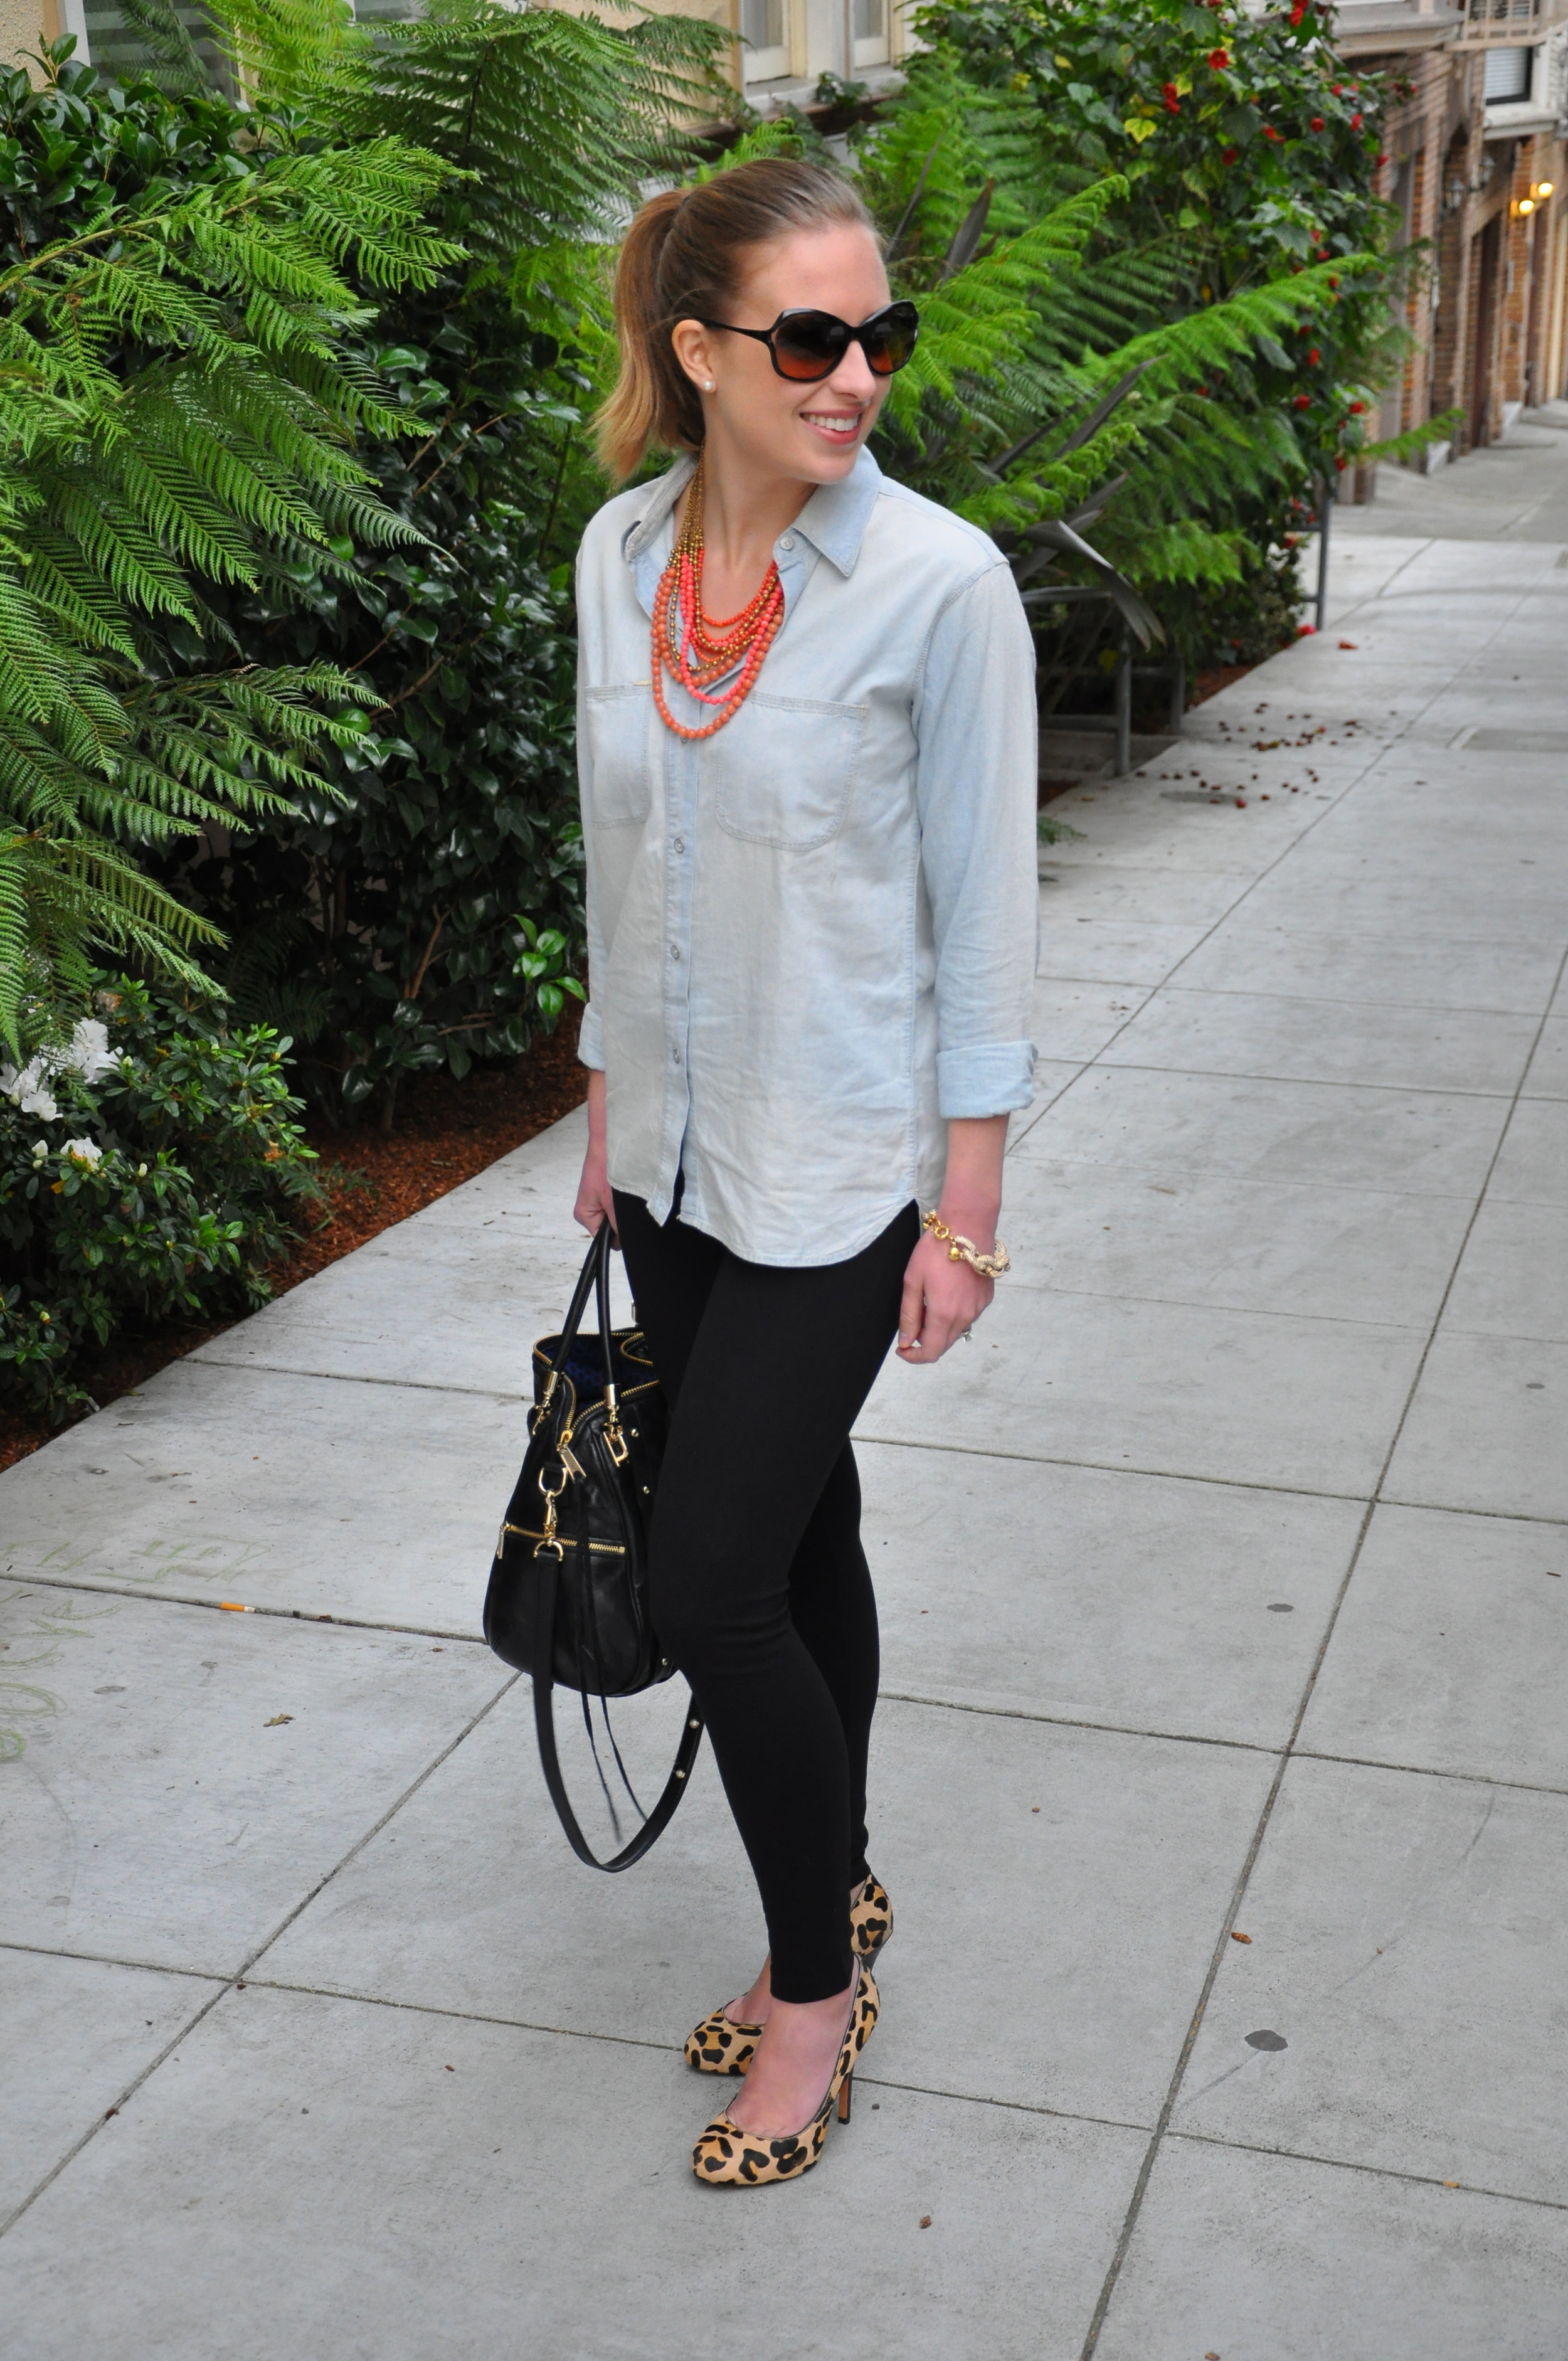 Madewell chambray shirt, J. Crew leggings, Stella & Dot necklace, Ivanka Trump heels (similar), Rebecca Minkoff bag, J. Crew bracelet, Tory Burch sunglasses (similar)